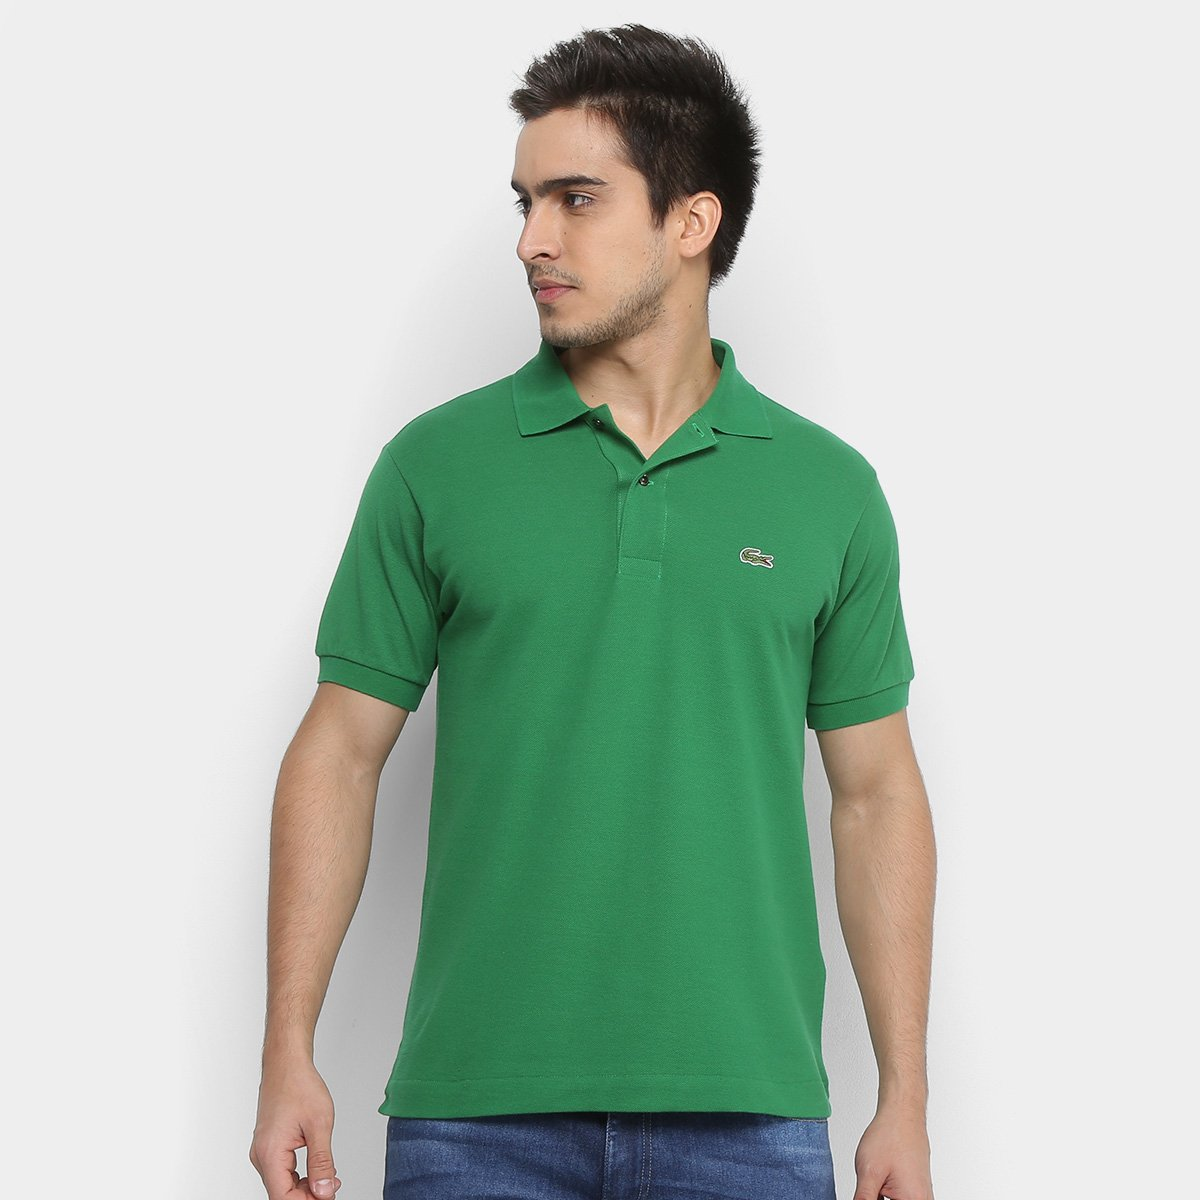 Camisa Polo Lacoste Piquet Original Fit Masculina. undefined 3a12c1d41f9a2